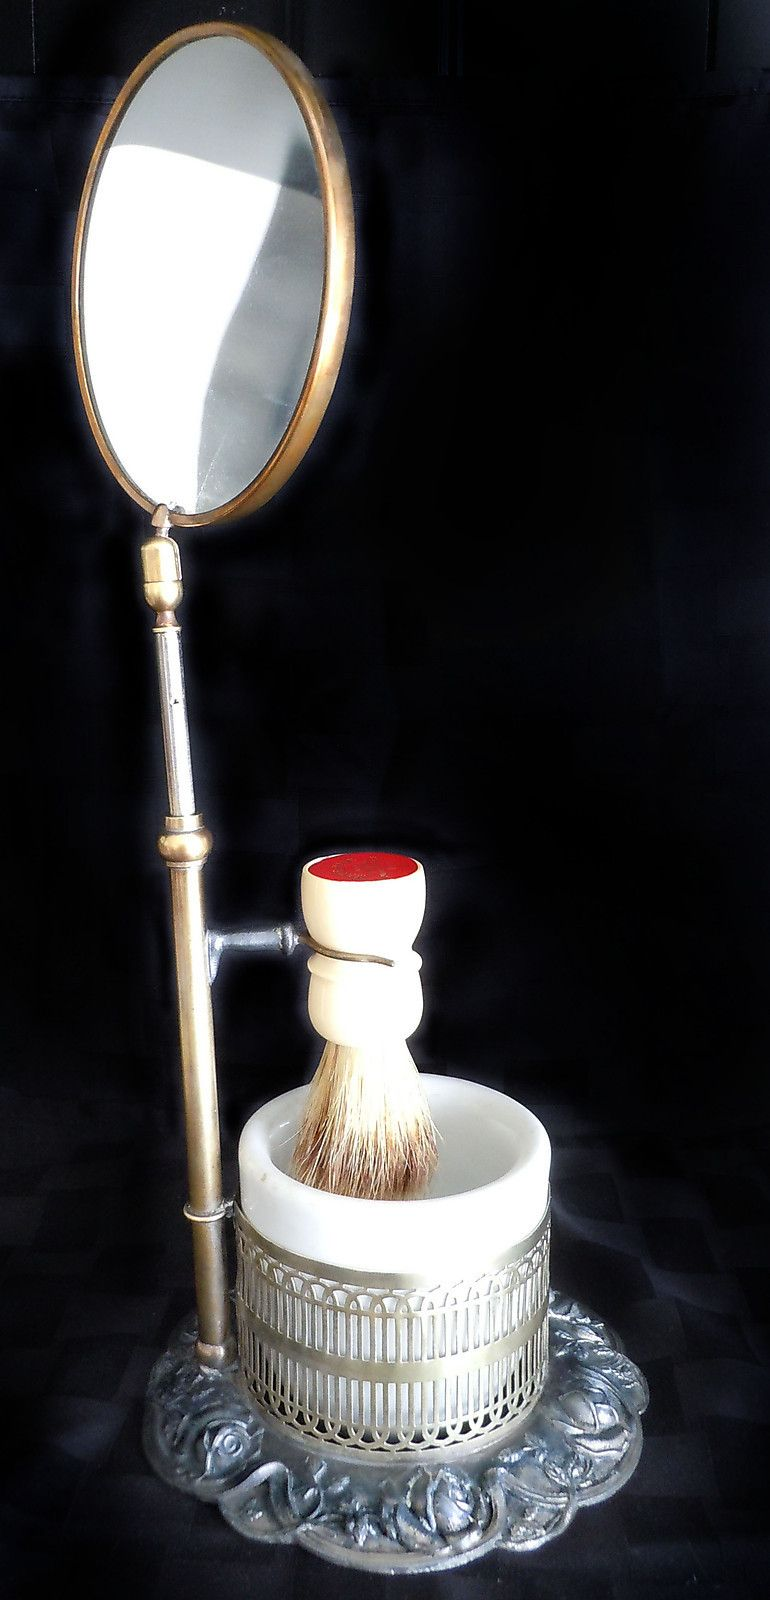 Antique Vintage Shaving Mirror On Stand W Brush White Bowl Cup Brass Silver Shaving Mirror Vintage Shaving Shaving Stand